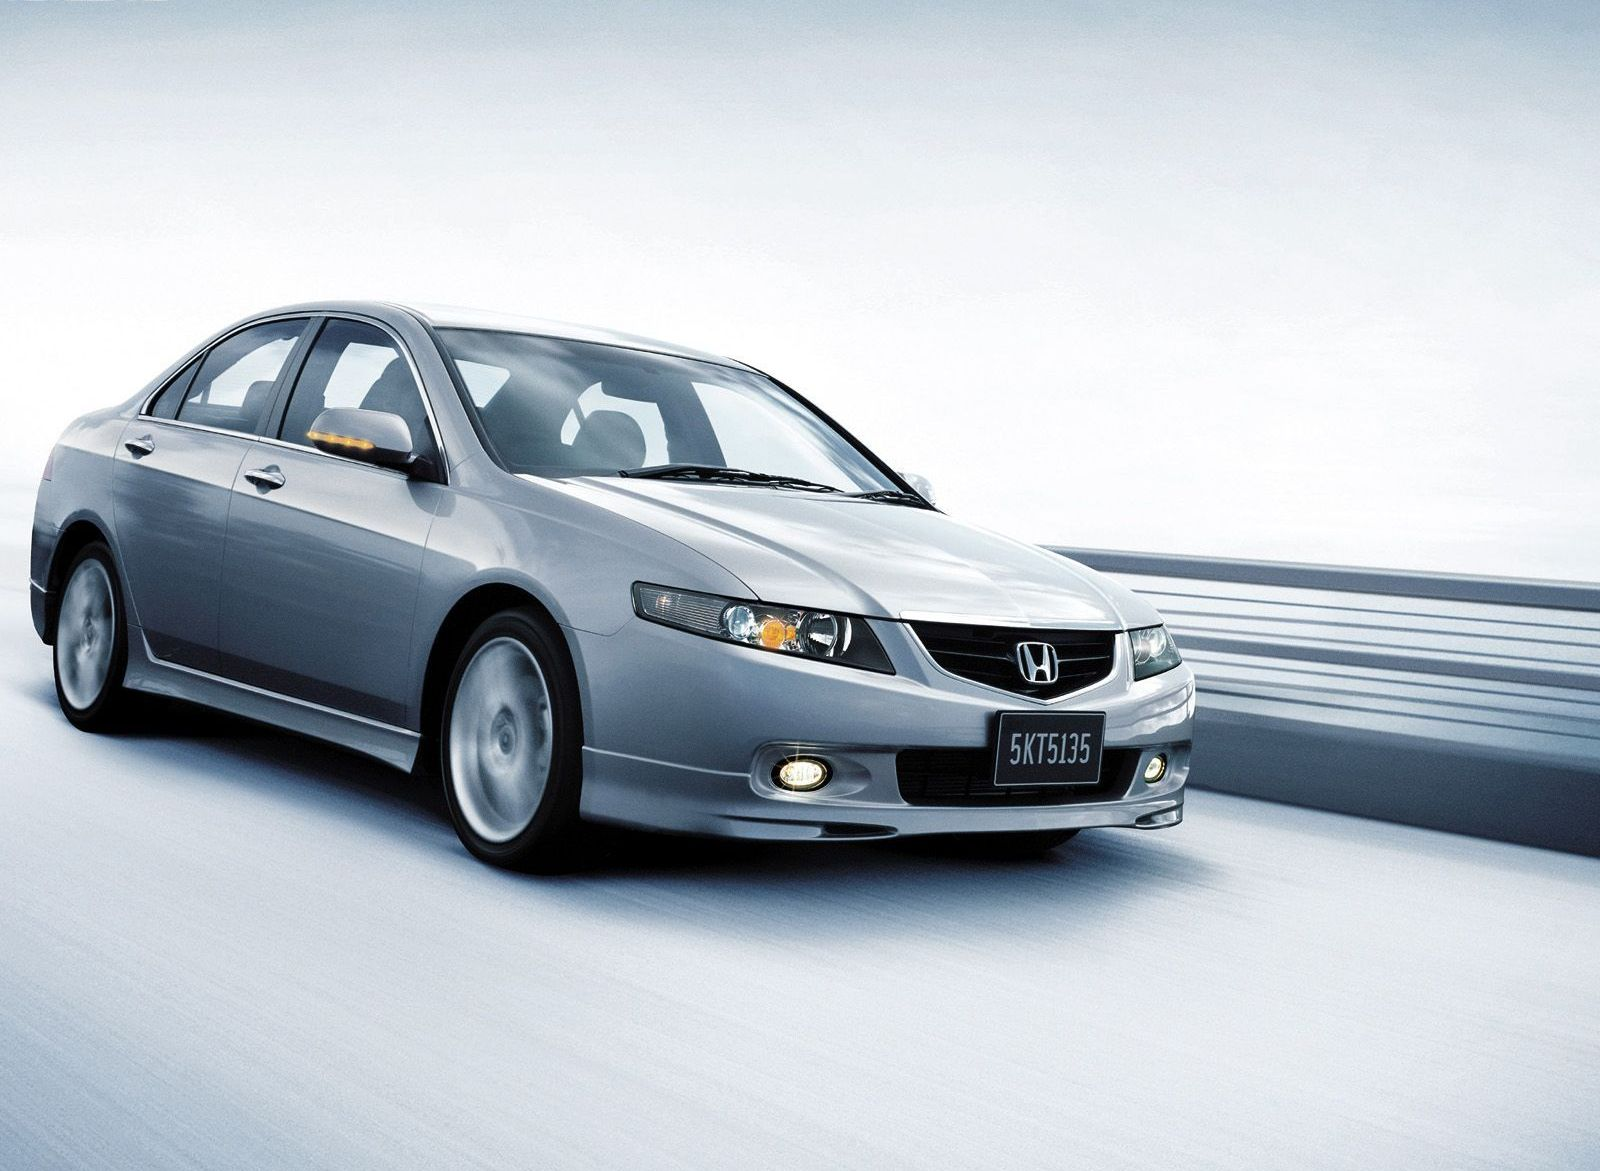 2015 Accord 0 To 60 Page 2 Release Date Price And Specs